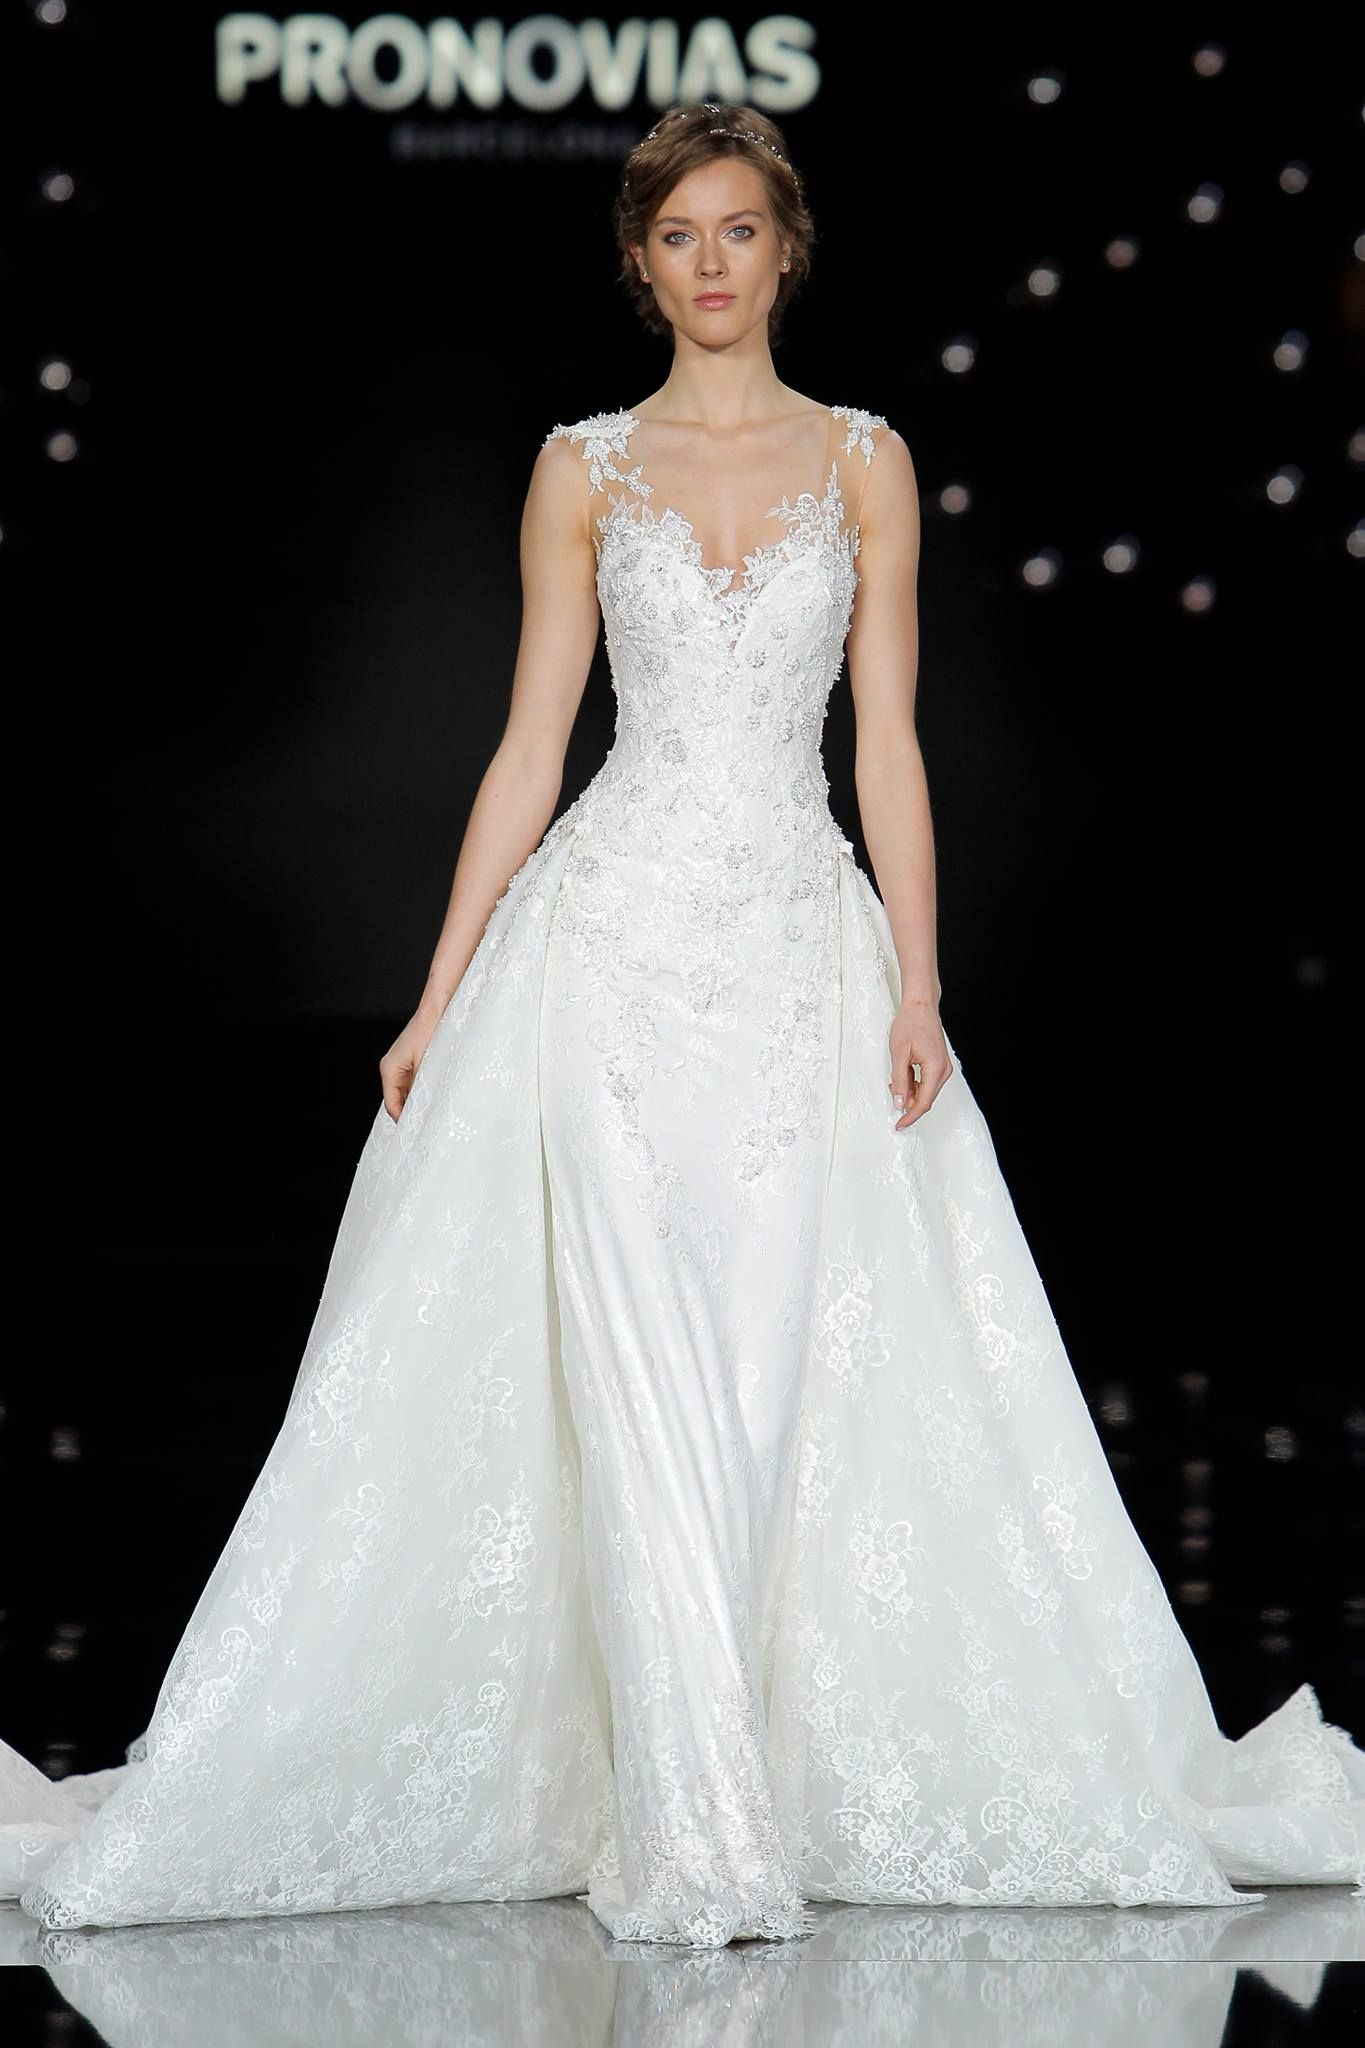 Spectacular Atelier Pronovias Spring Closed out Barcelona Bridal Fashion Week with a gorgeous collection of weightless gowns inspired by La Ciel or the sky